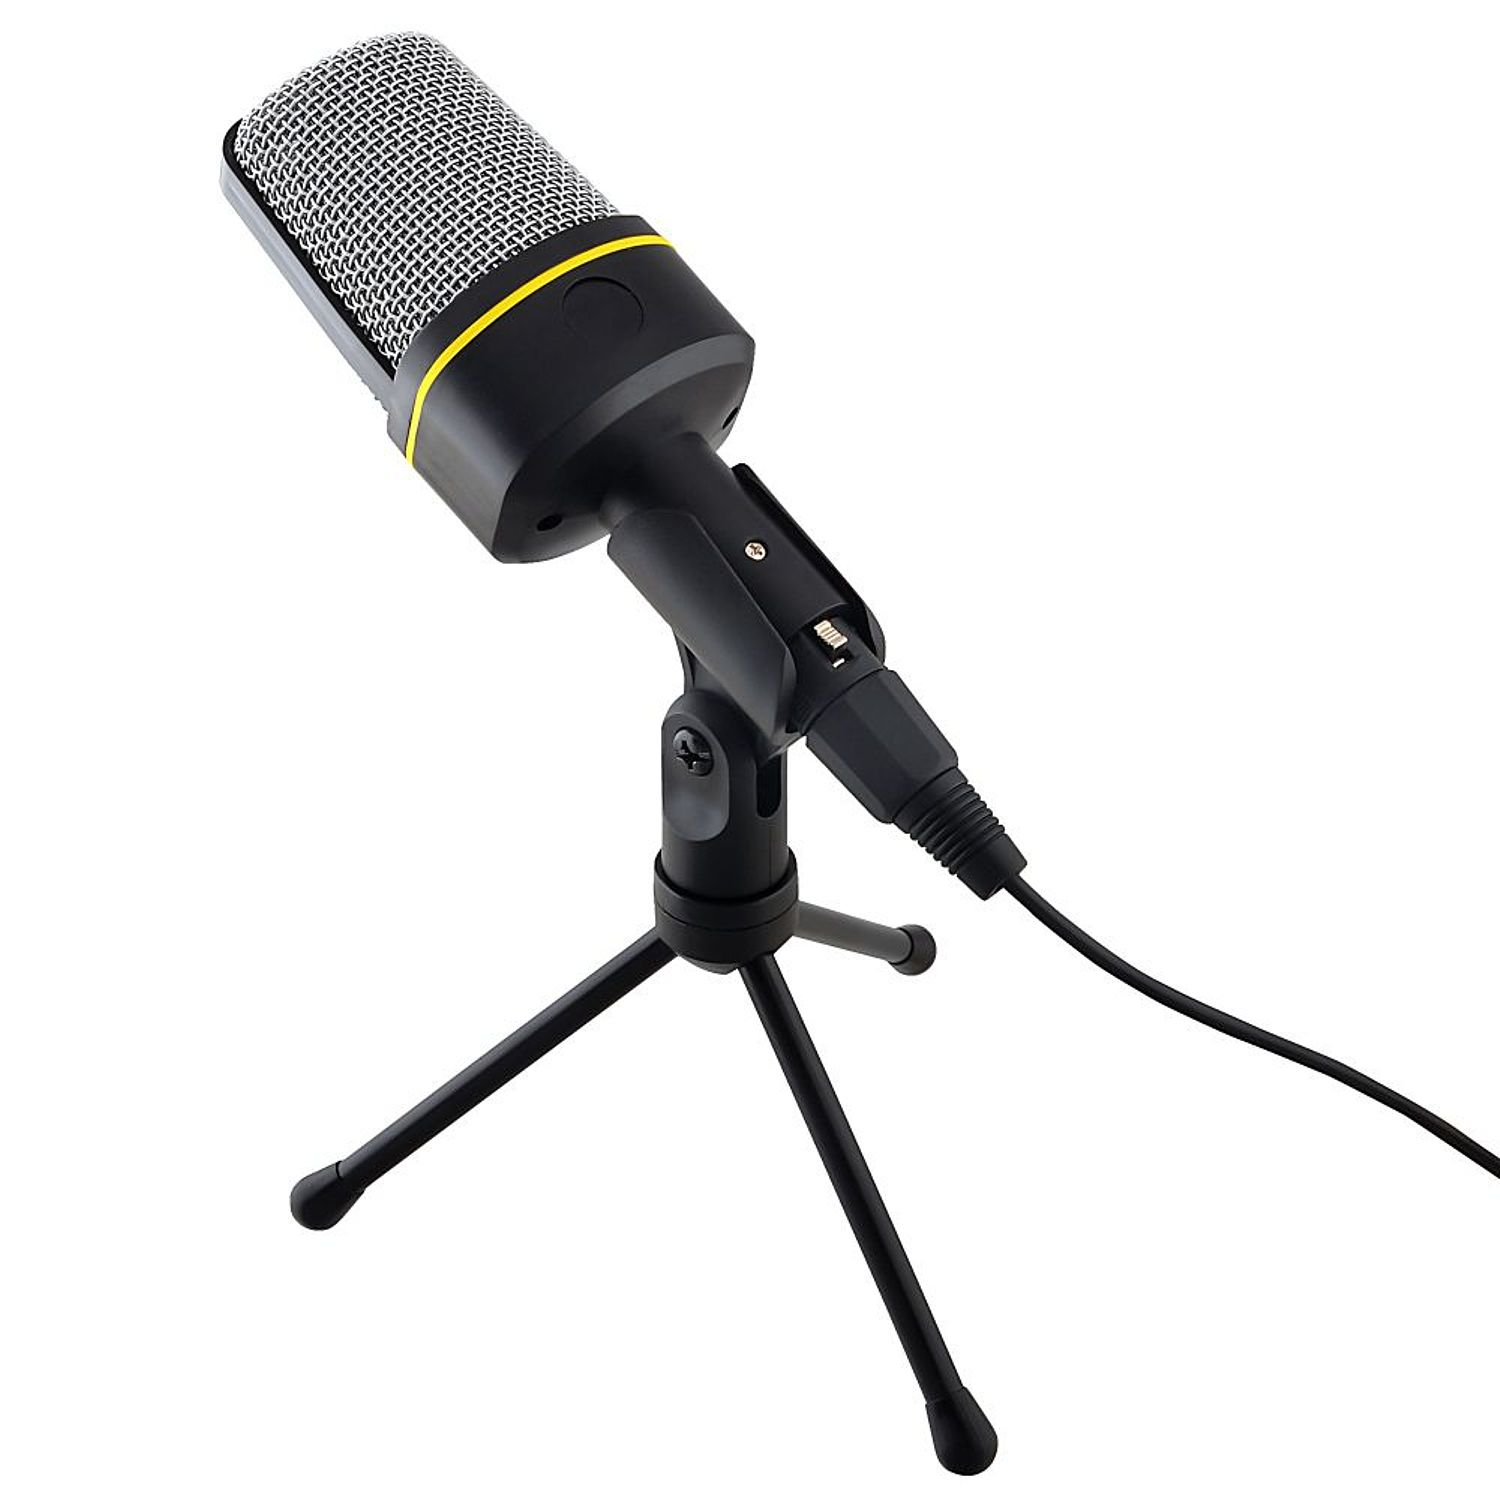 Insten 3.5mm Studio Professional Microphone Mic with Stand For Audio Sound Recording Skype... by